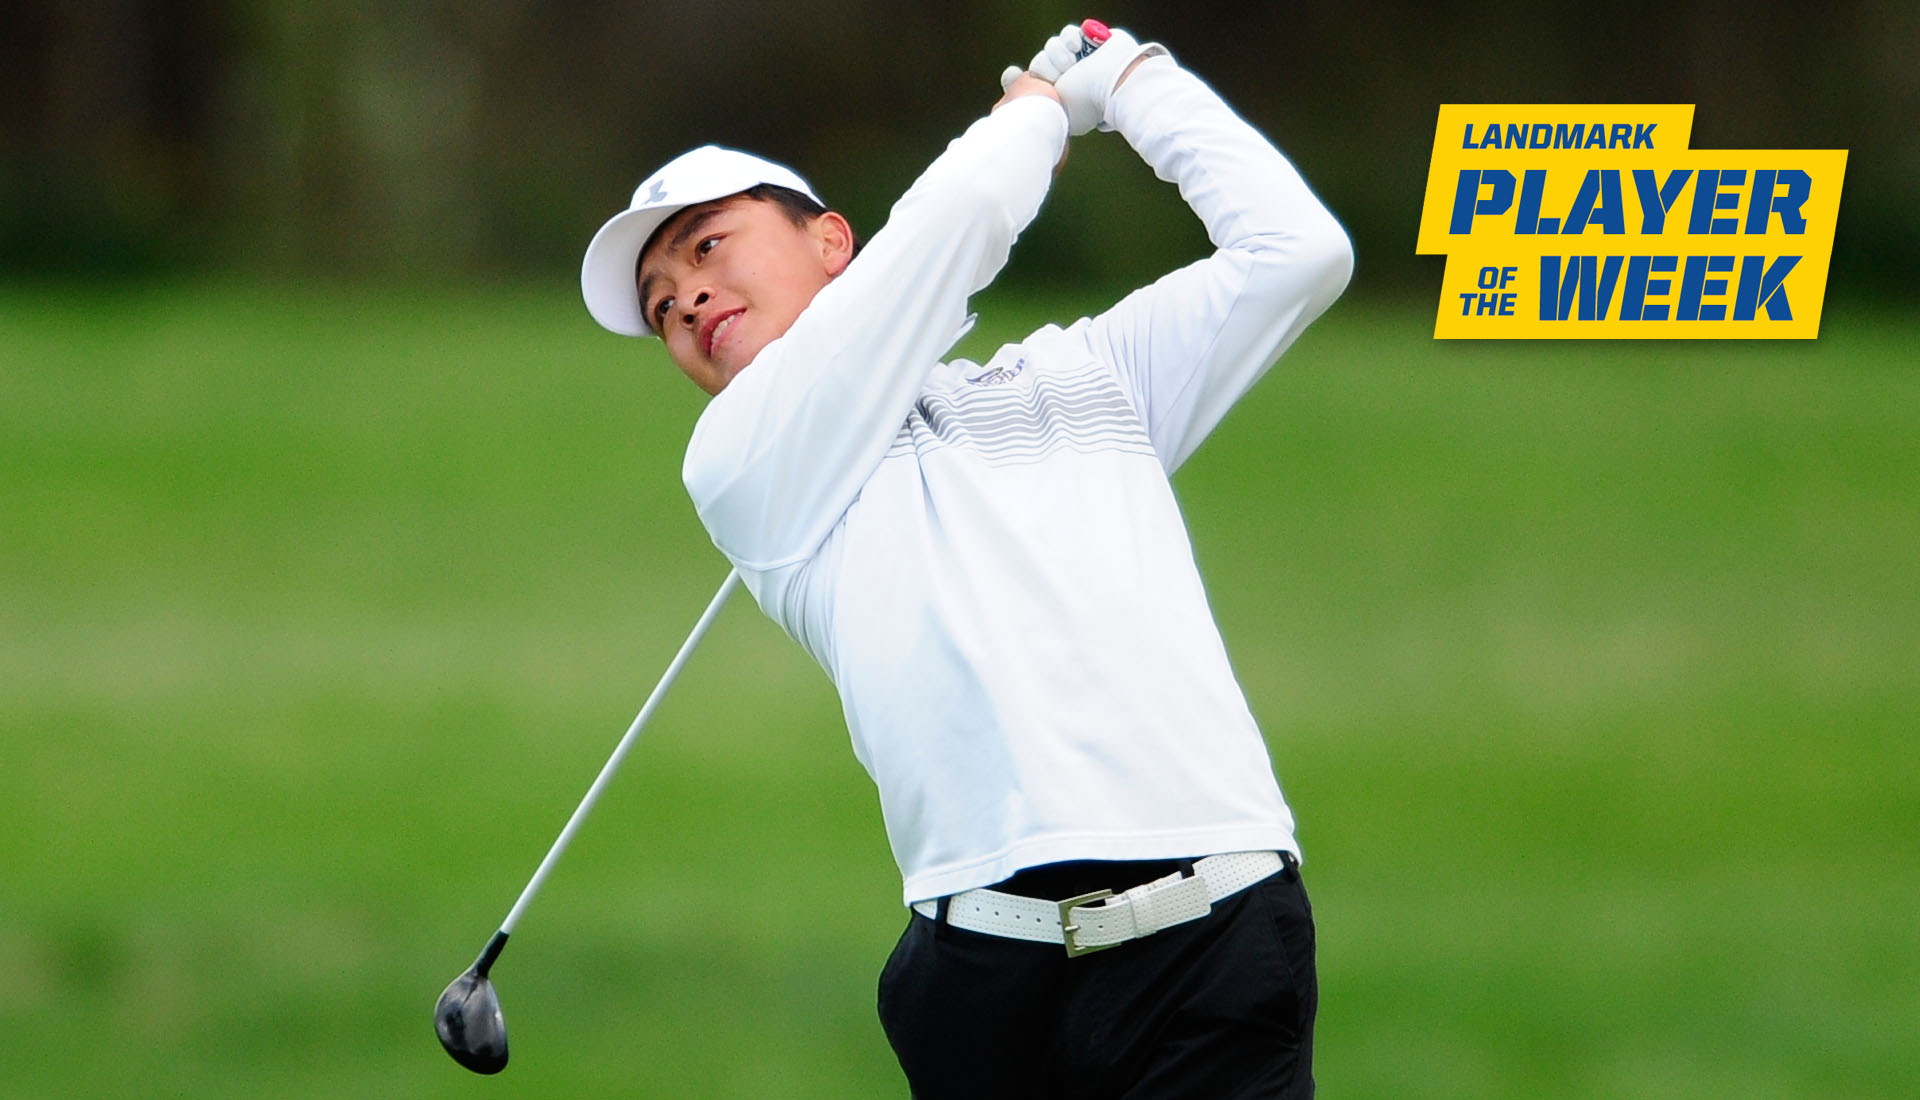 Goucher Men's Golf Evan Yue Named A Landmark Conference Athlete Of The Week